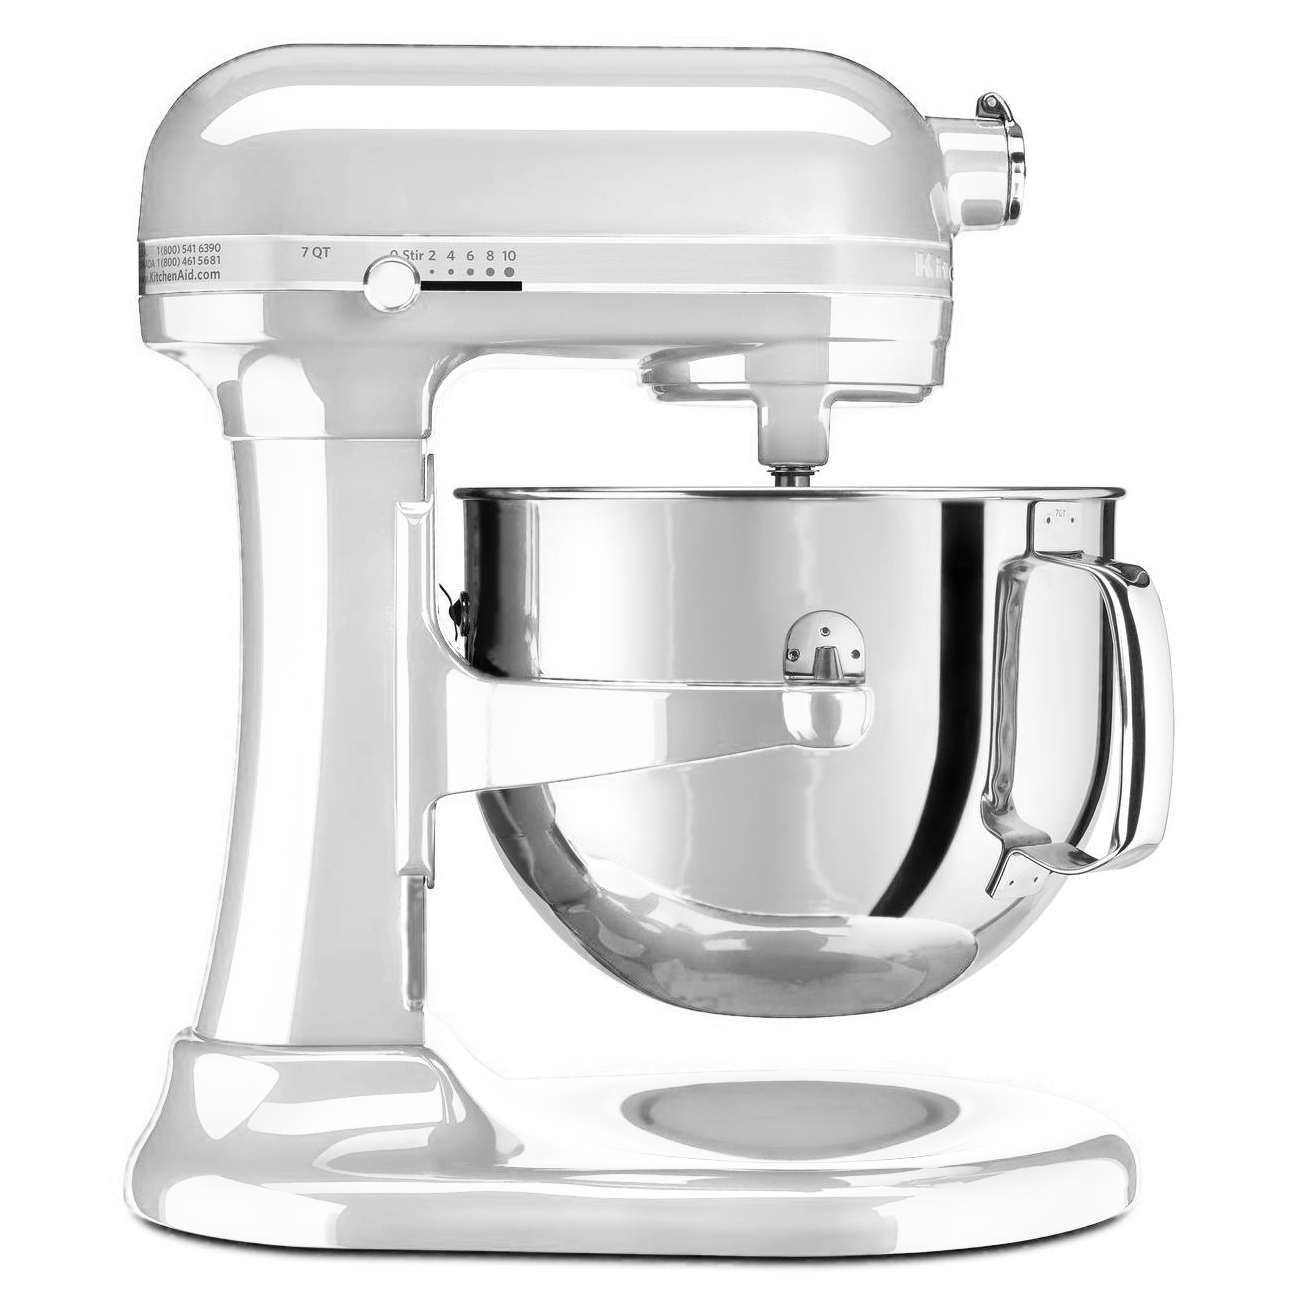 KitchenAid Pro Line Series Frosted Pearl White 7 Quart Bowl Lift Stand Mixer